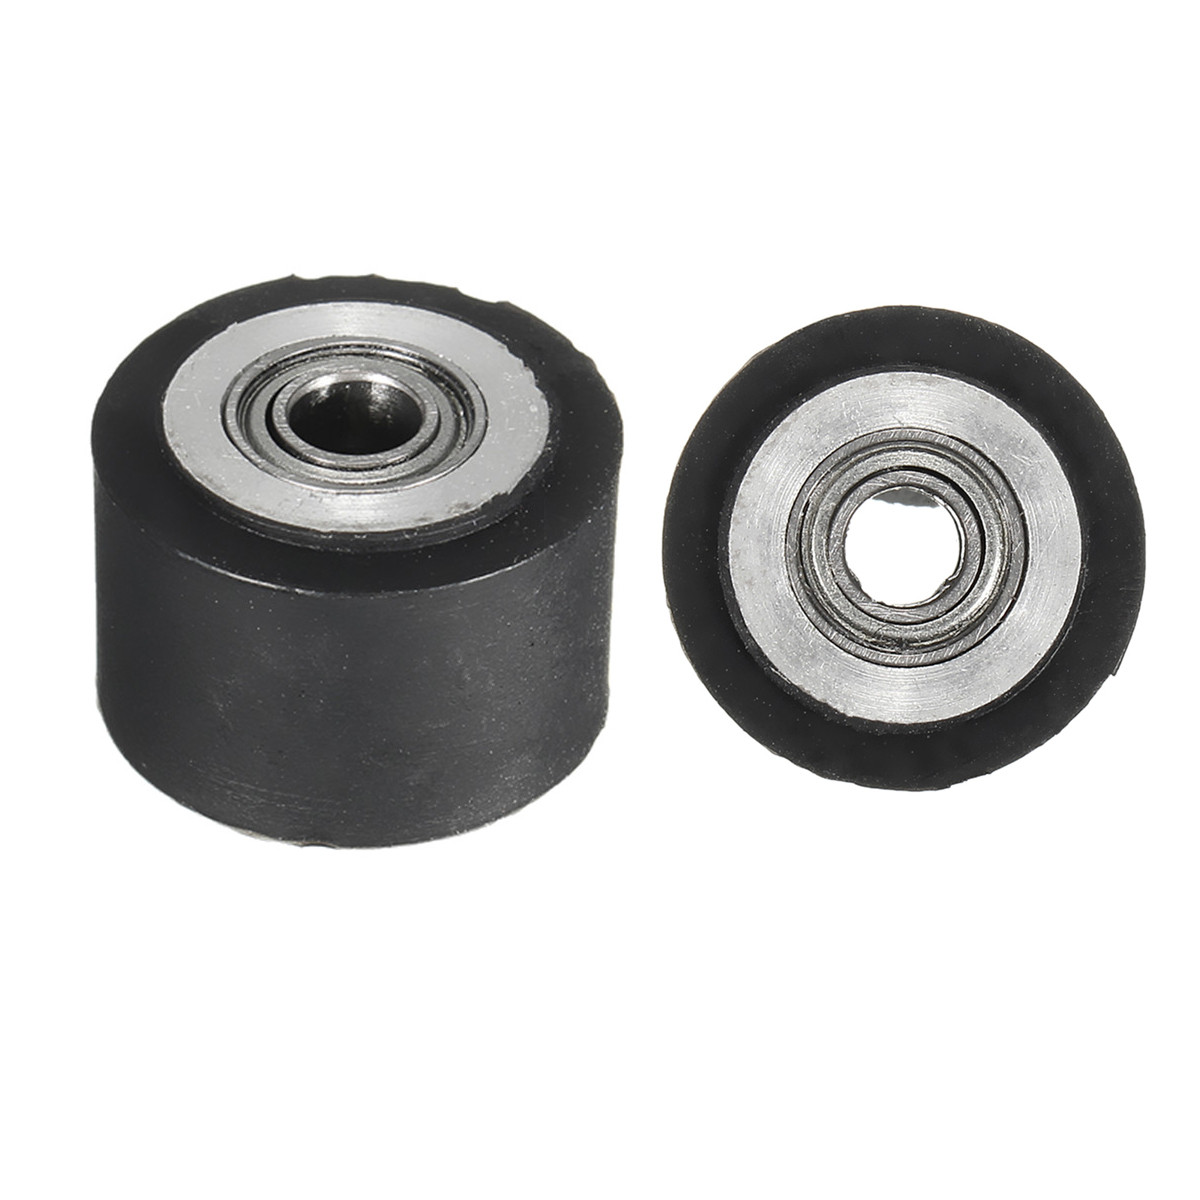 5Pcs/10Pcs Pinch Roller Wheel Machinery Parts For Roland Vinyl Cutting Plotter 4x11x16mm Wheel Bearing